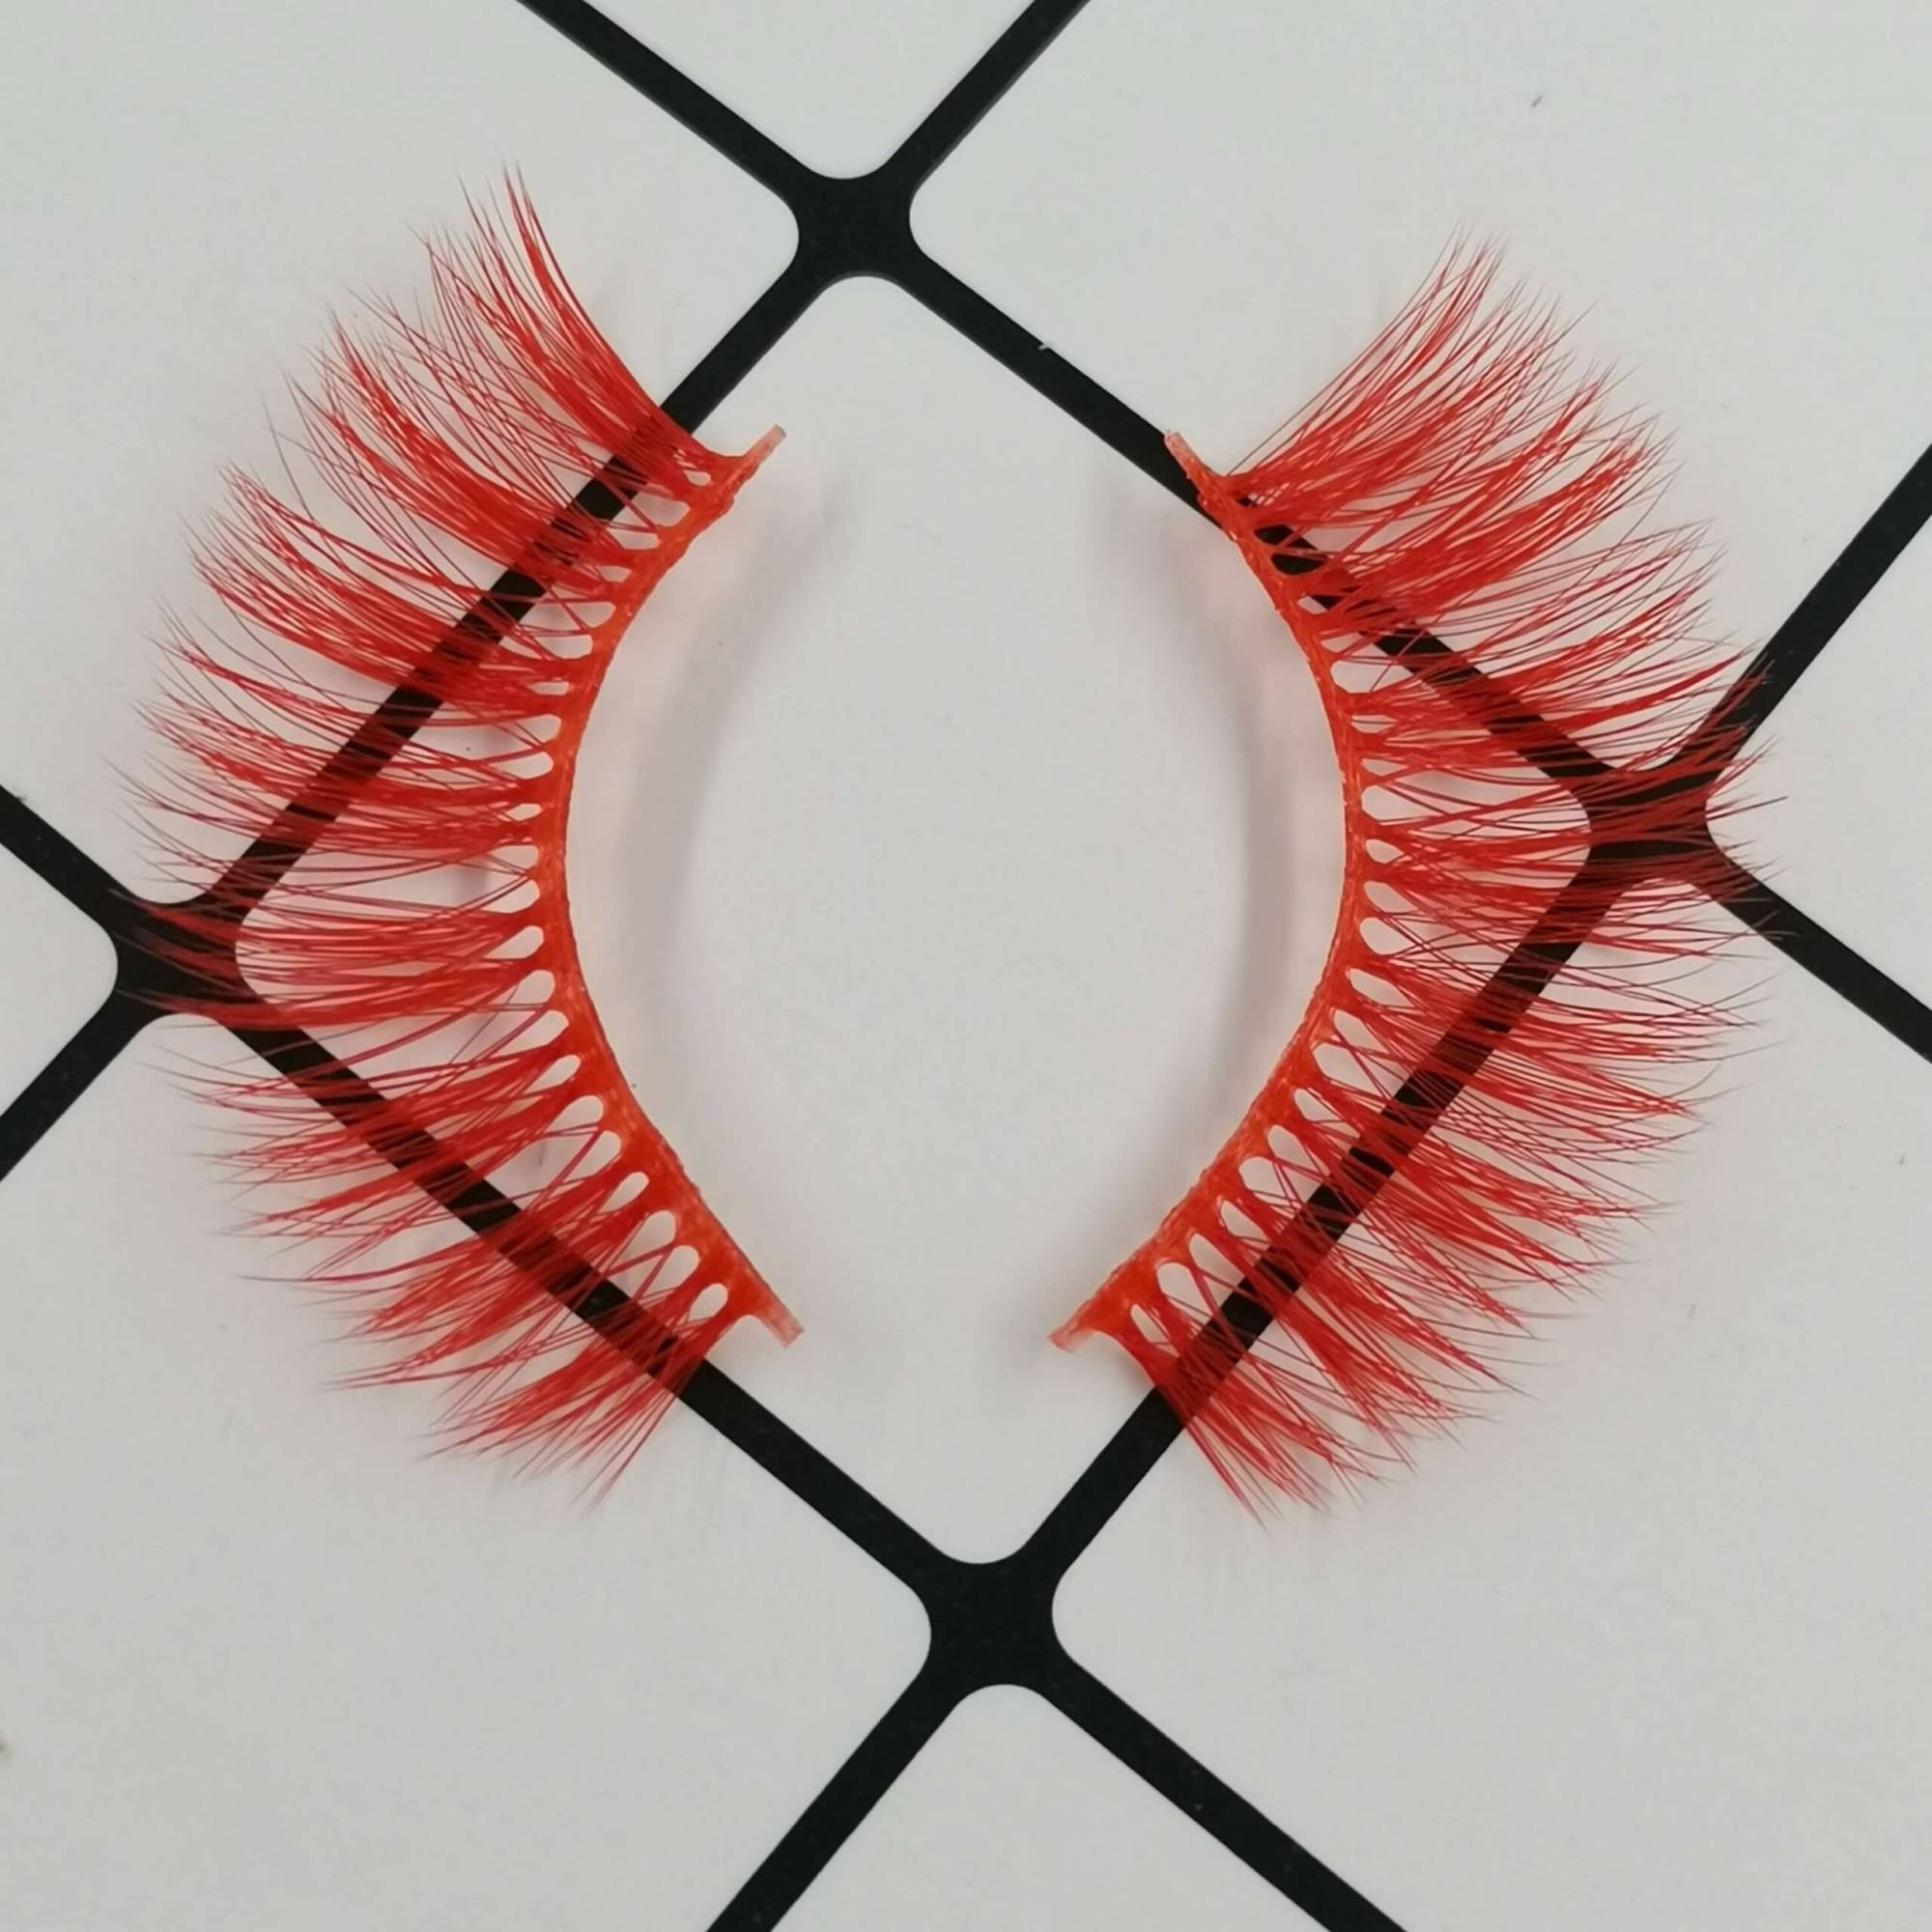 A pair of colored eyelashes for your eye shape and its color is red. Trust me, ProluxuryLashes brand is the best eyelash supplier